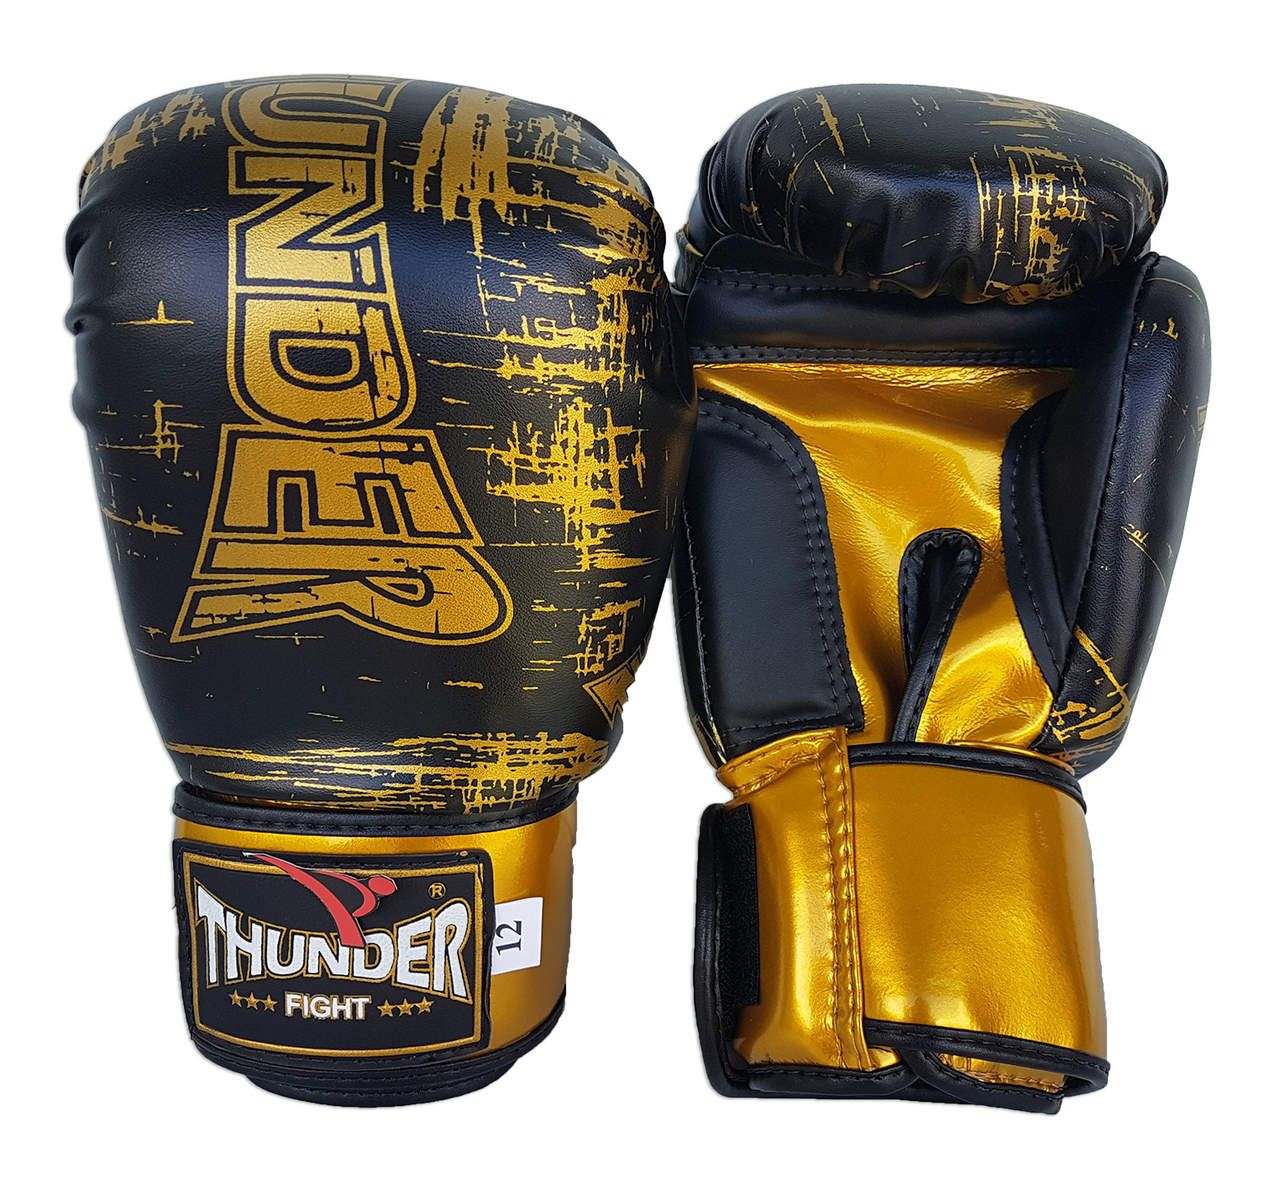 Luva de Boxe / Muay Thai 12oz - Preto Riscado - Thunder Fight  - PRALUTA SHOP